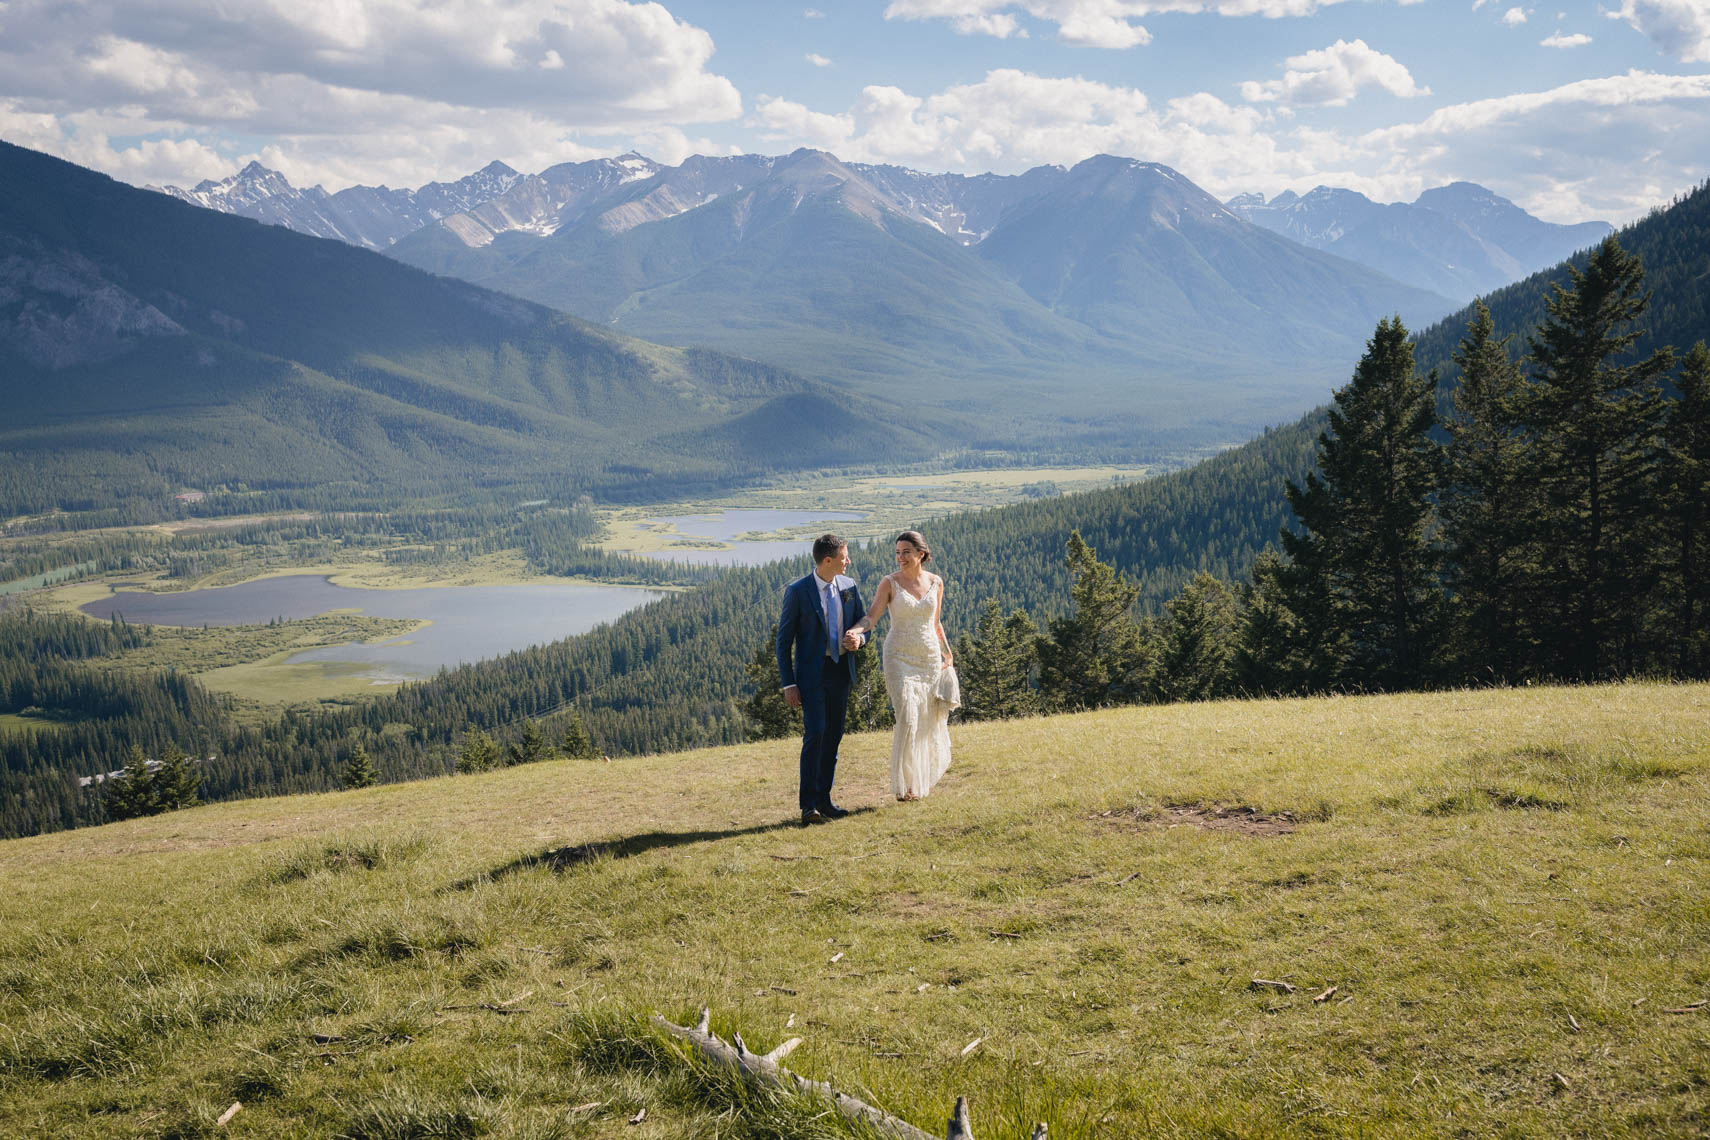 Canadian wedding couple in Banff, Alberta Canada mountains